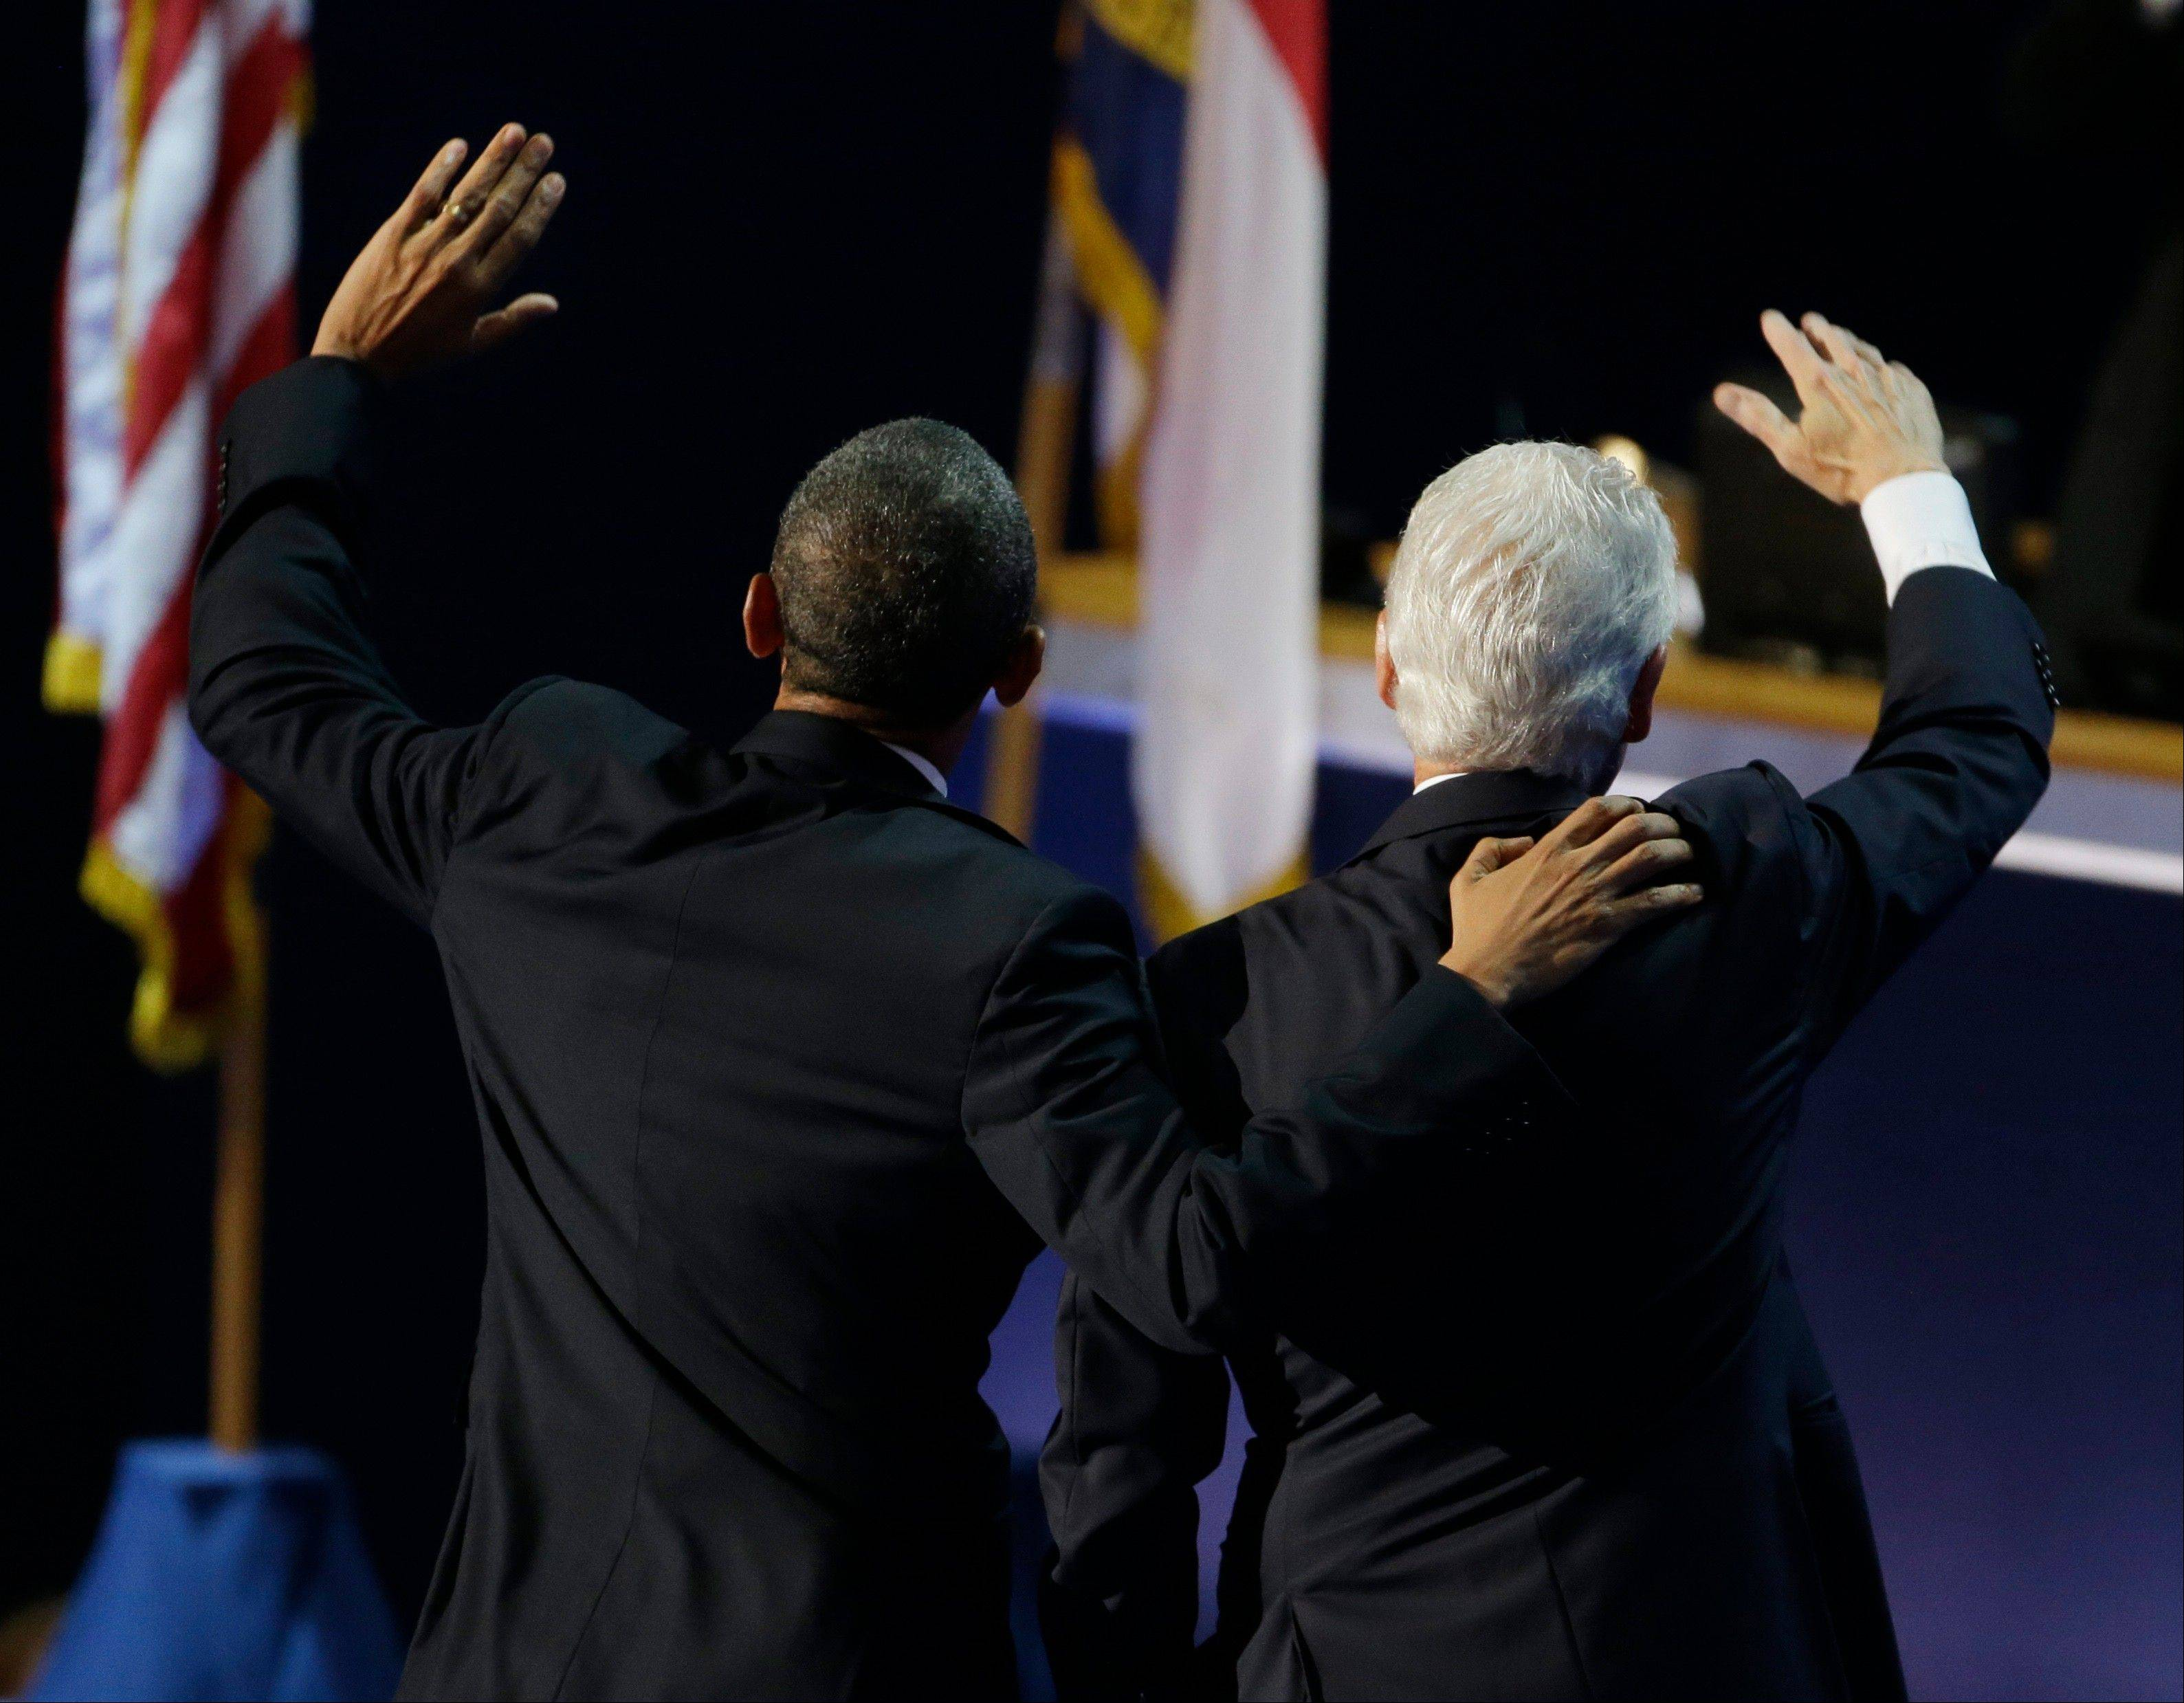 President Barack Obama, left, and former President Bill Clinton wave to delegates after Clinton's speech to the Democratic National Convention in Charlotte, N.C., on Wednesday, Sept. 5, 2012.